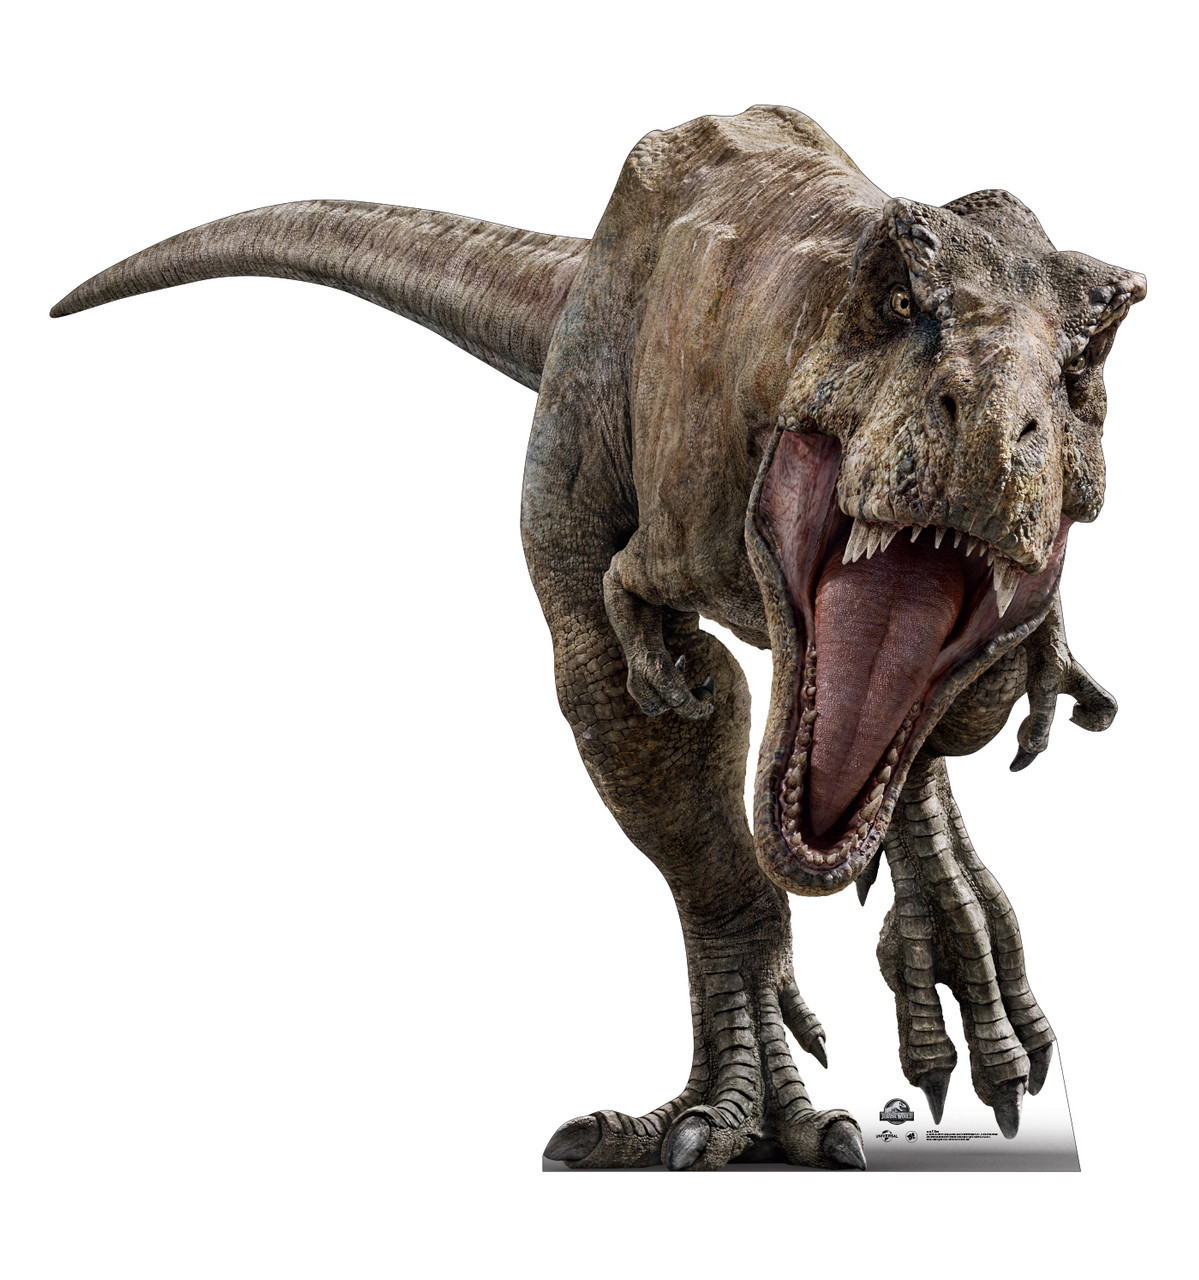 Life-size cardboard standee of T-Rex from The Lost World.